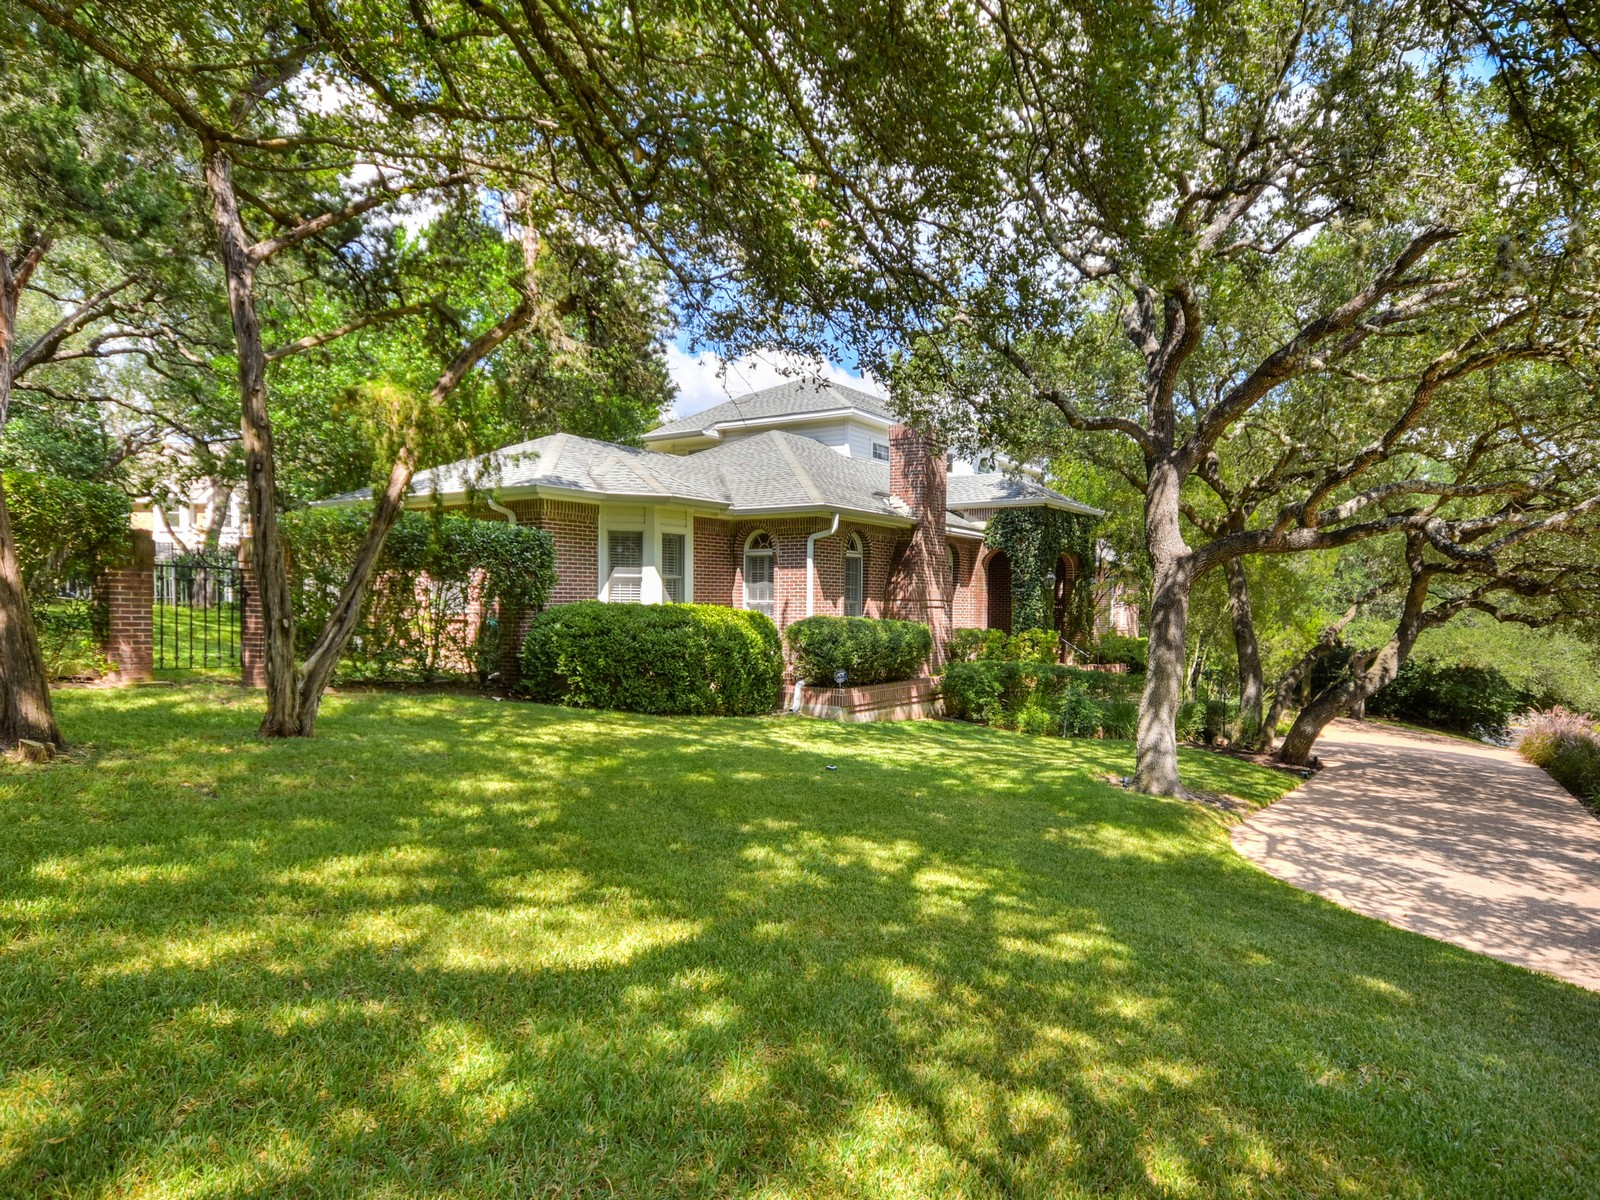 Single Family Home for Sale at Traditional Westlake Hills Home 2400 Westlake Pass Austin, Texas 78746 United States